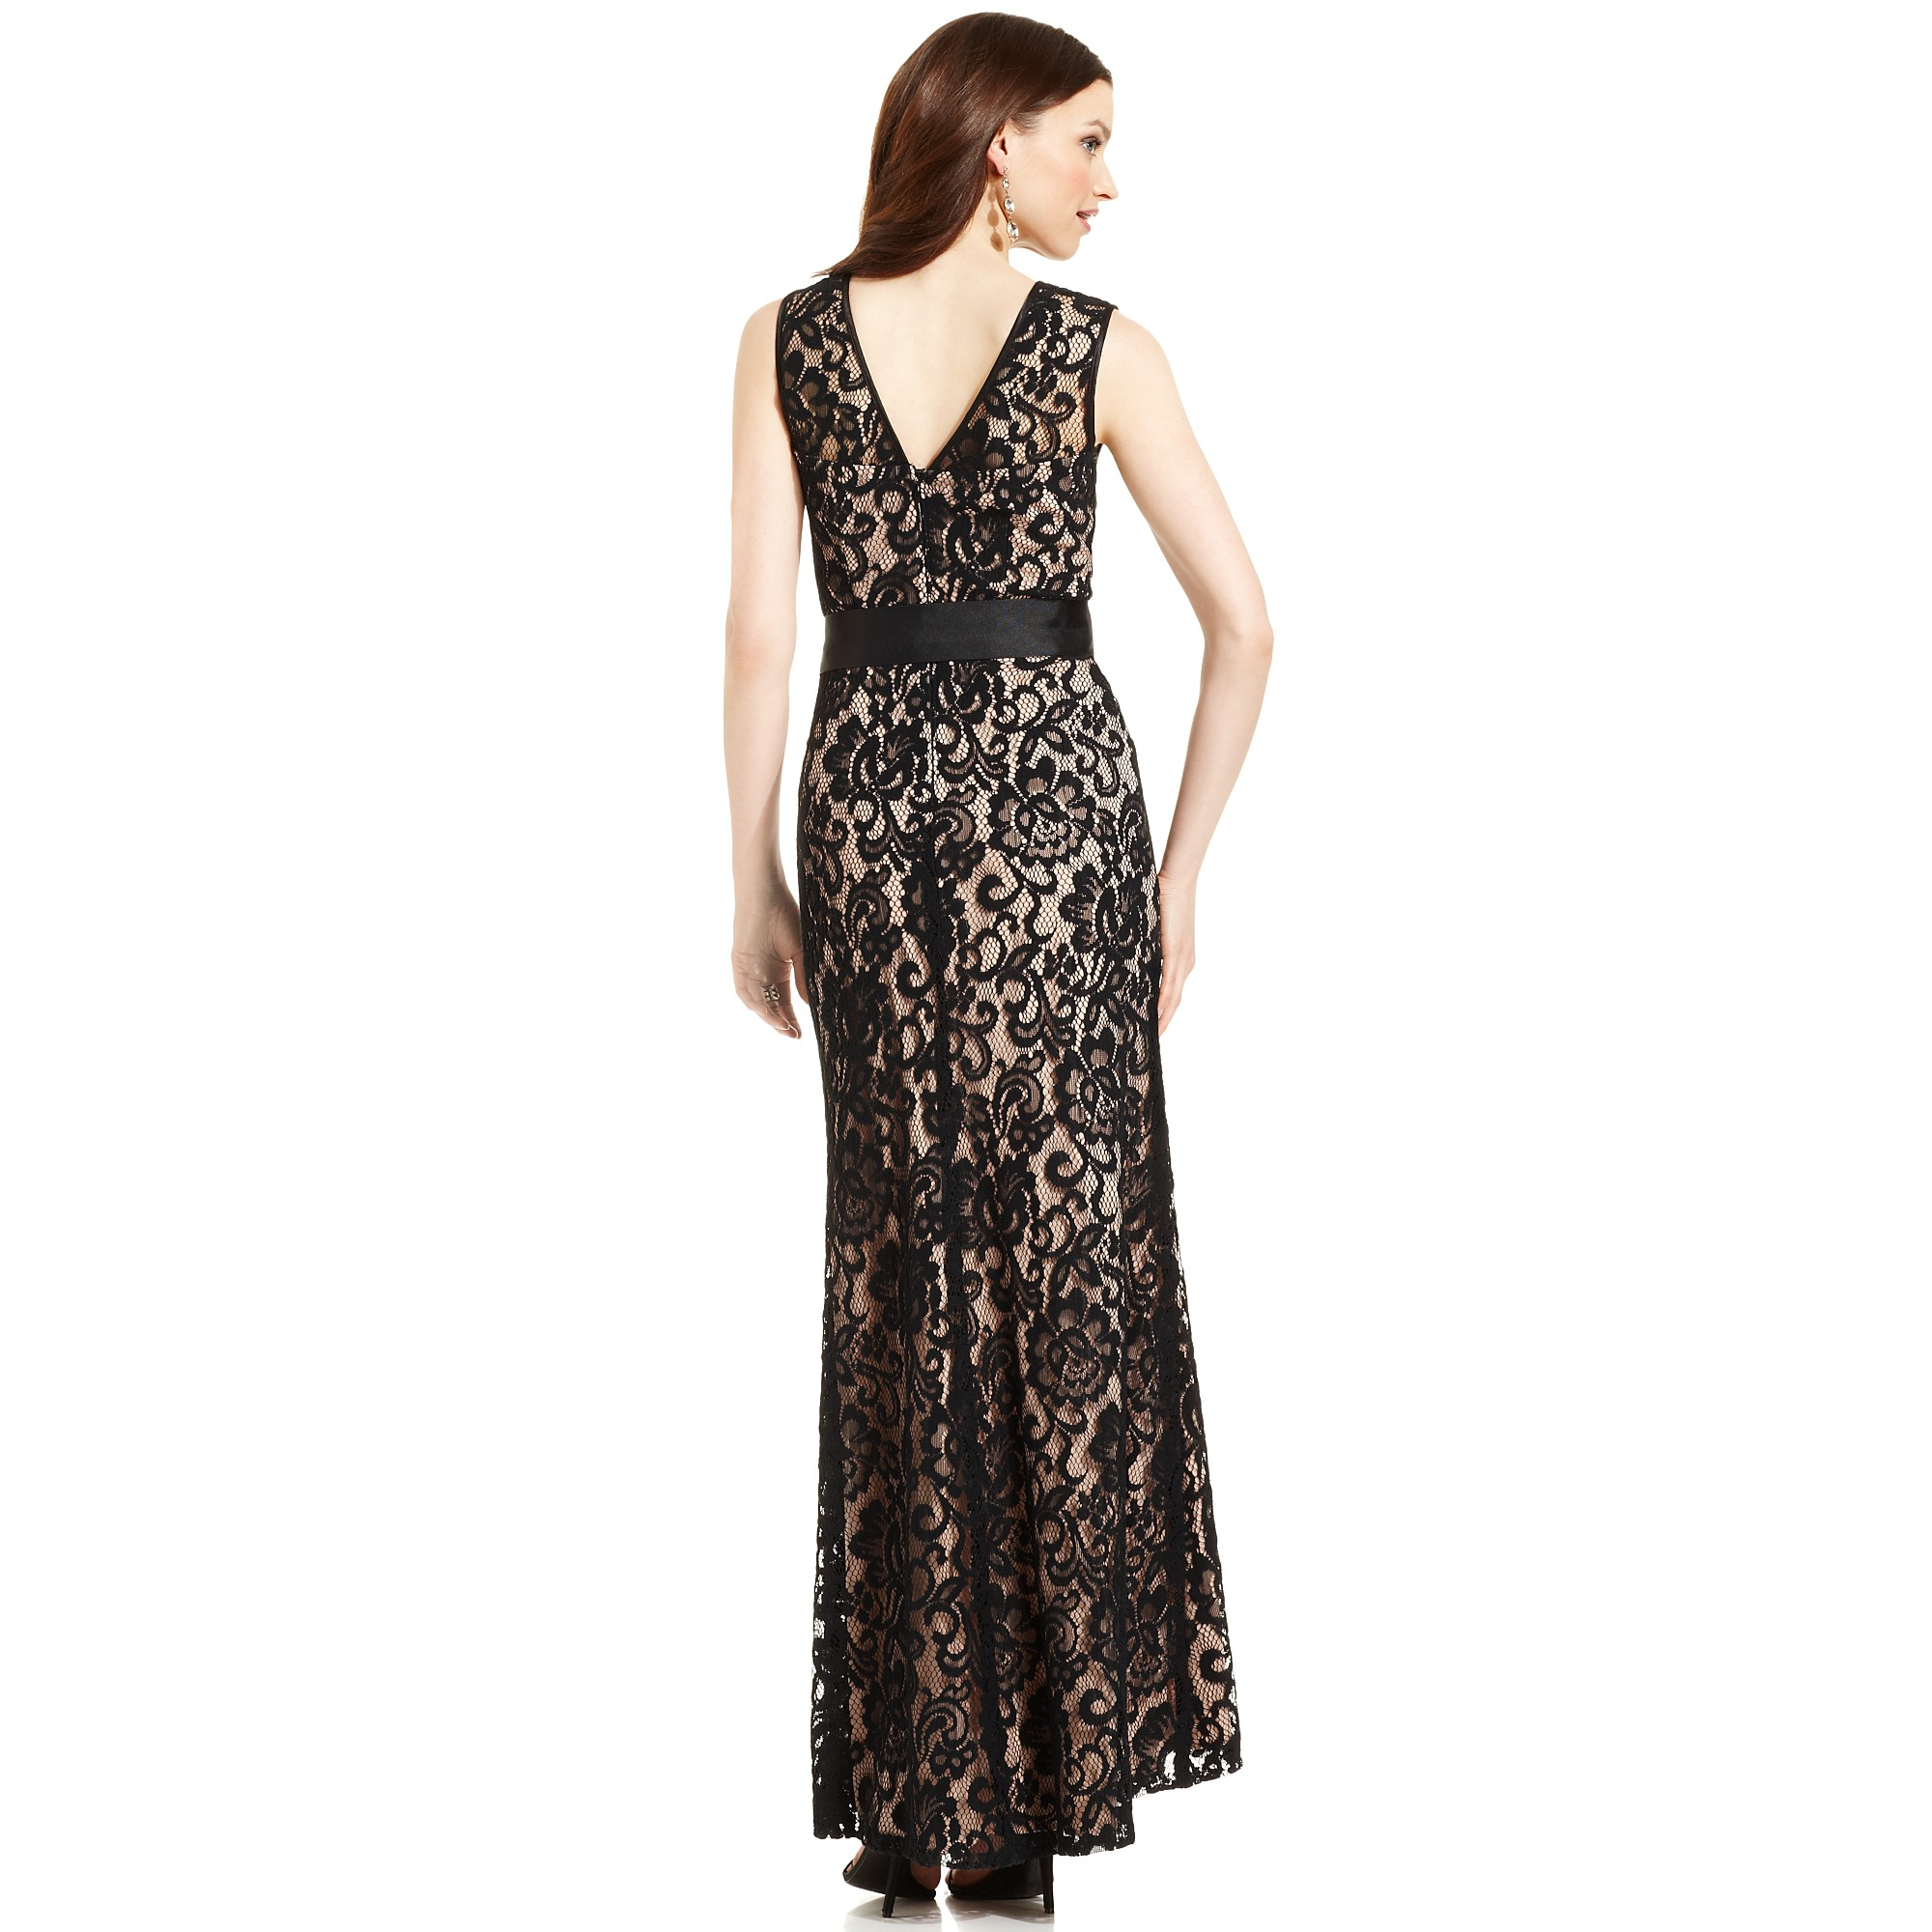 Lyst - Betsy & Adam Betsy and Adam Dress Sleeveless Belted Lace Gown ...